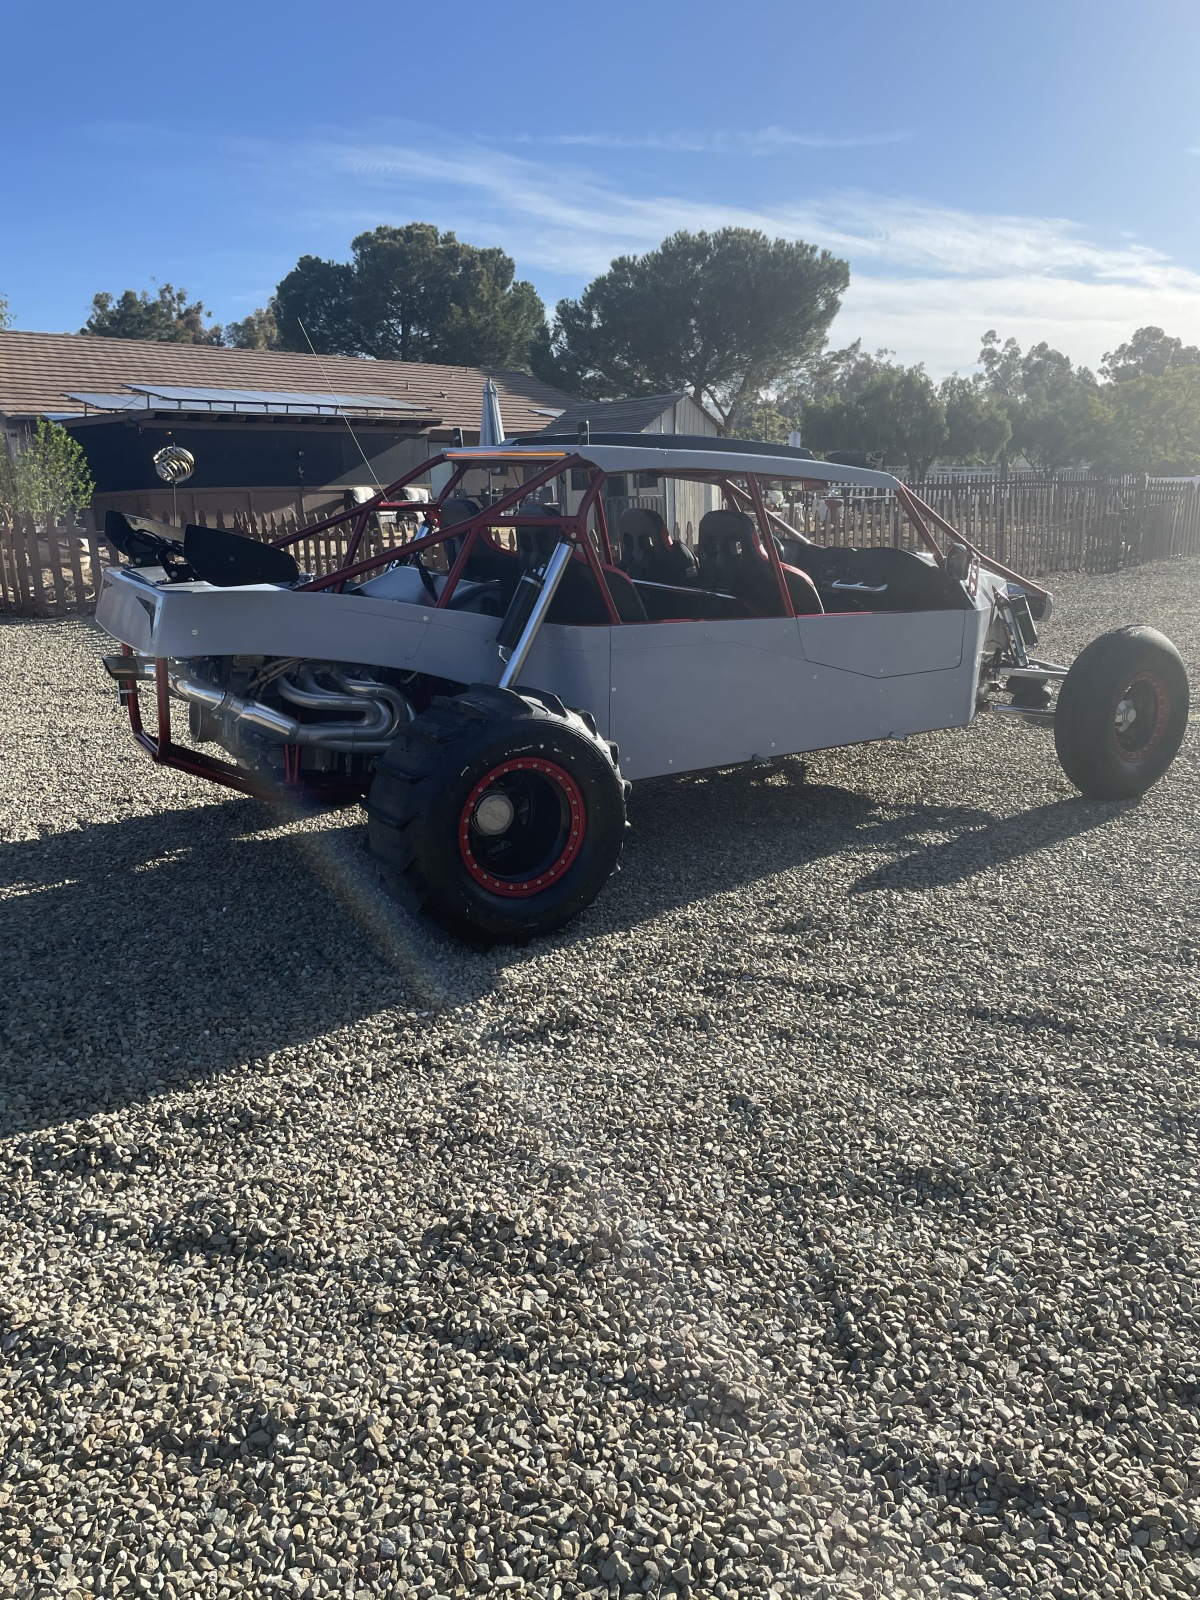 For Sale: FUNCO 4 SEATER LS2 S4 SEQUENTIAL 934'S CUSTOM BUILD - photo6